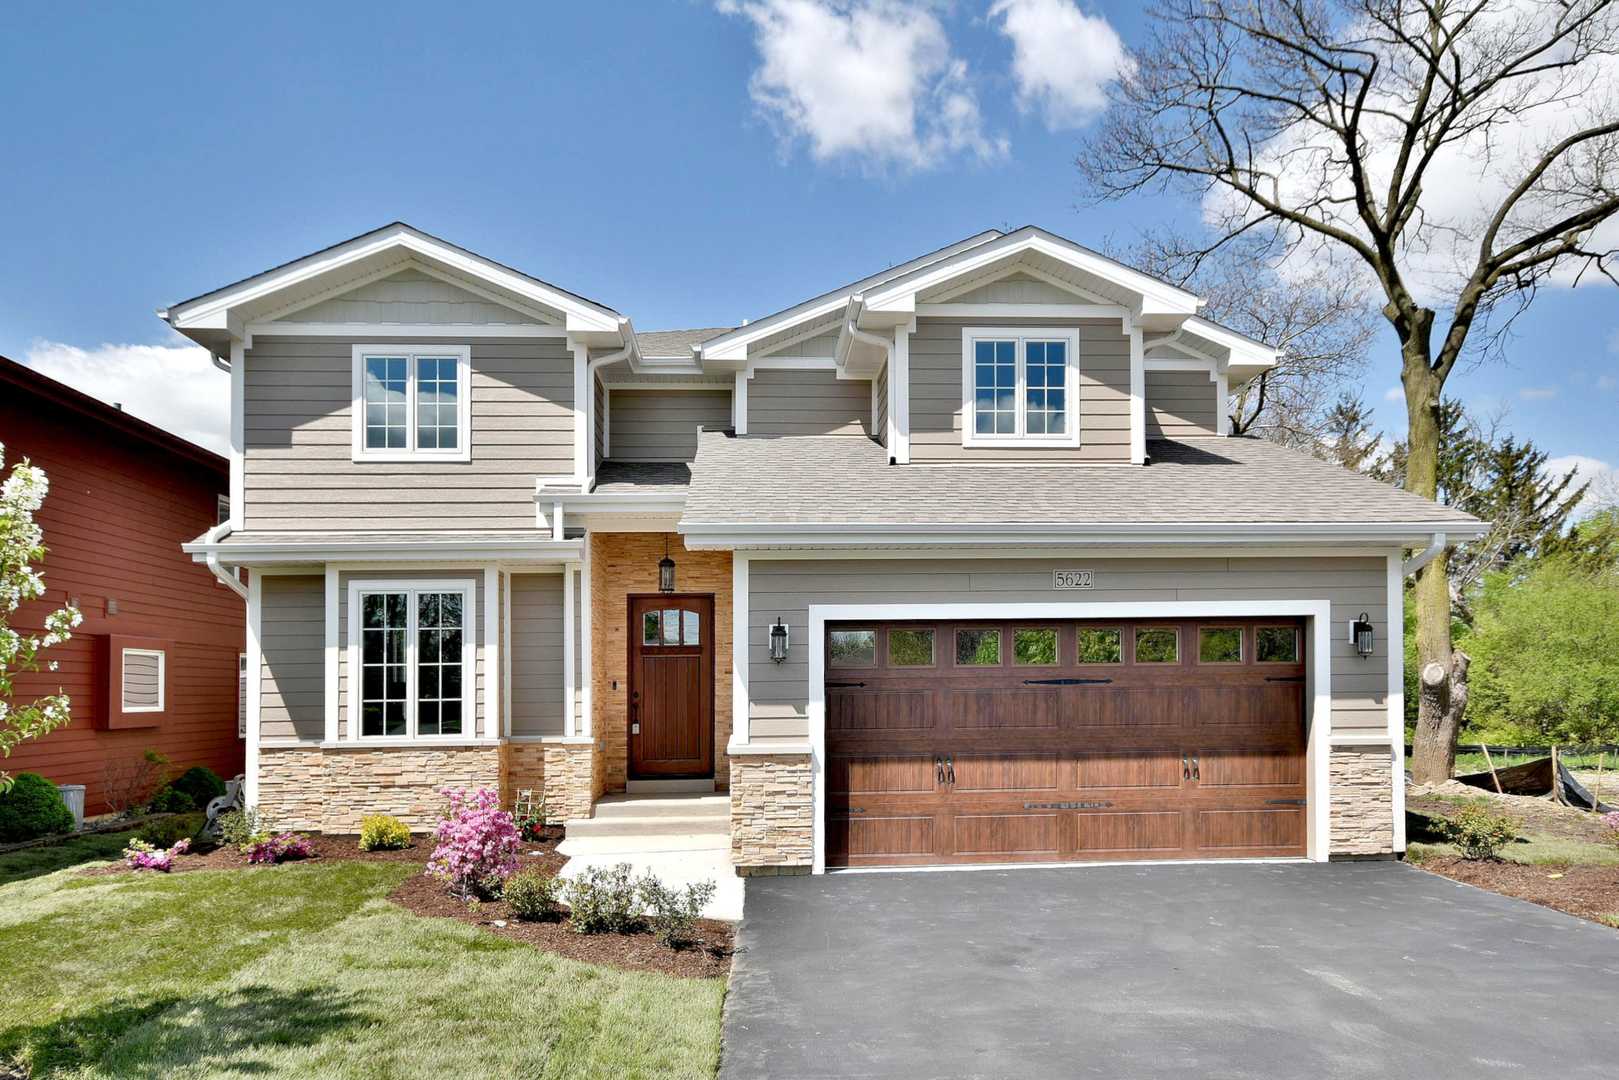 Photo for 5622 Belmont Road, DOWNERS GROVE, IL 60516 (MLS # 10379059)